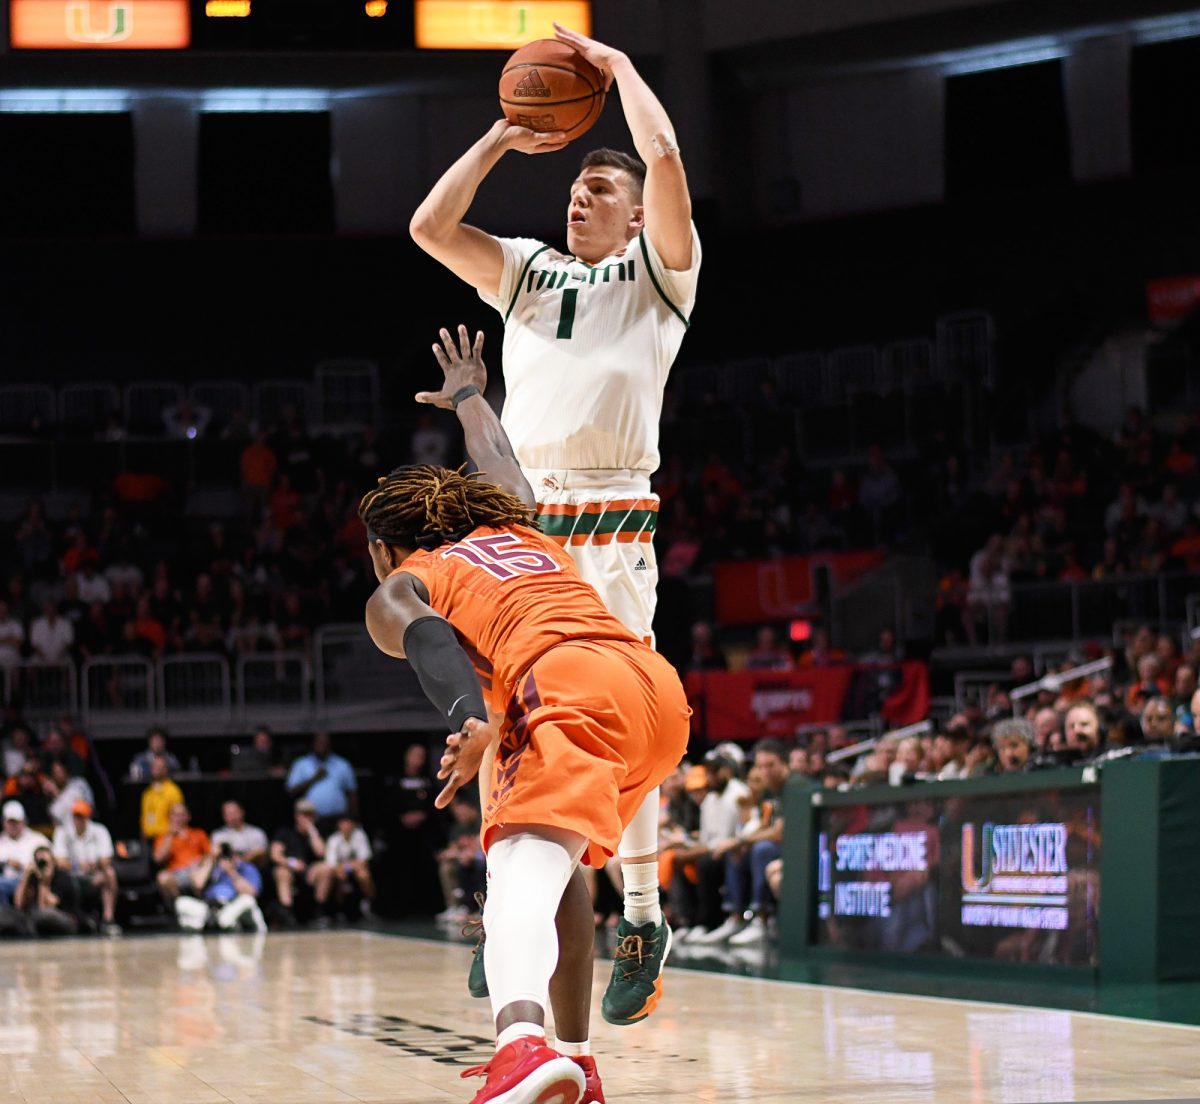 Canes come back from 12 points down to defeat Hokies in ...